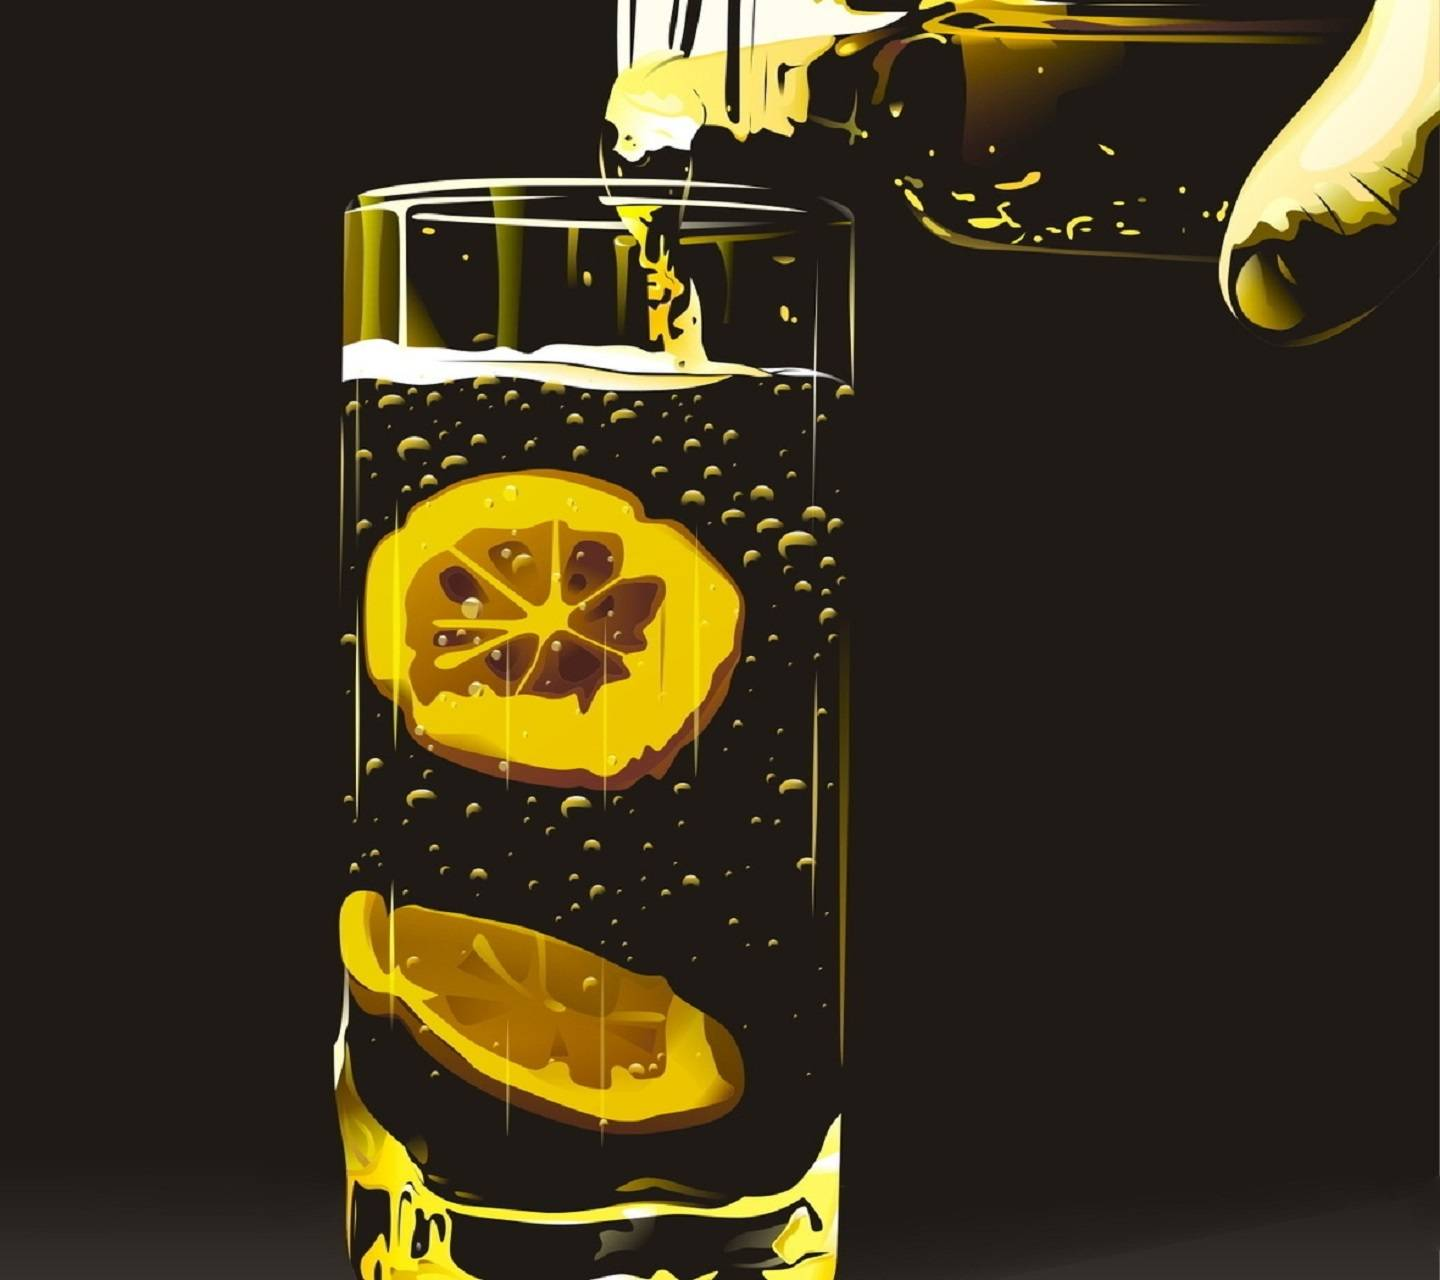 A Drink With Lemon